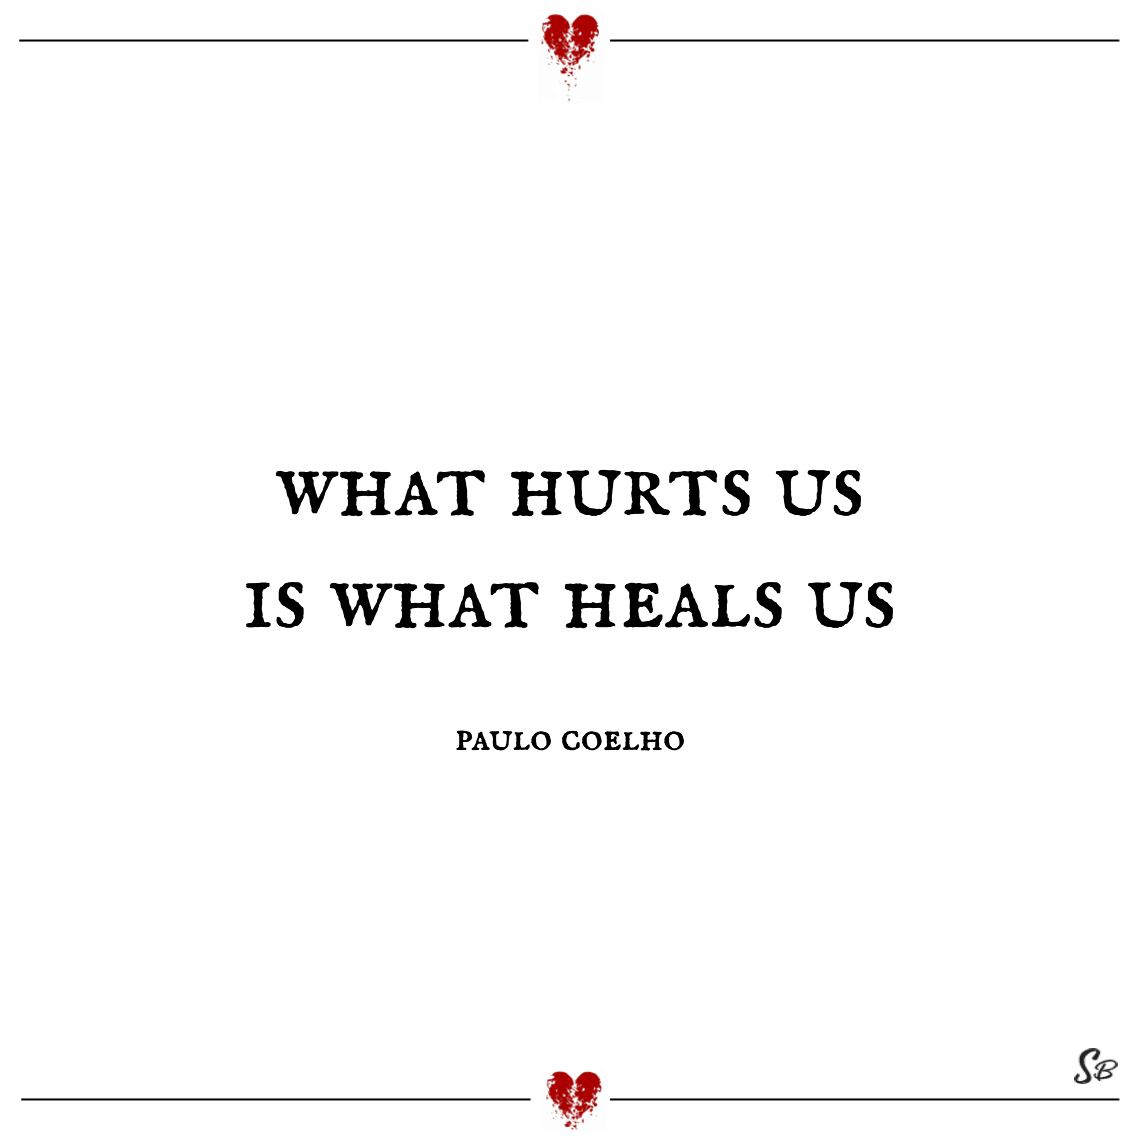 Quotes About Hurt What Hurts Us Is What Heals Us Paulo Coelho Feeling Hurt Pain